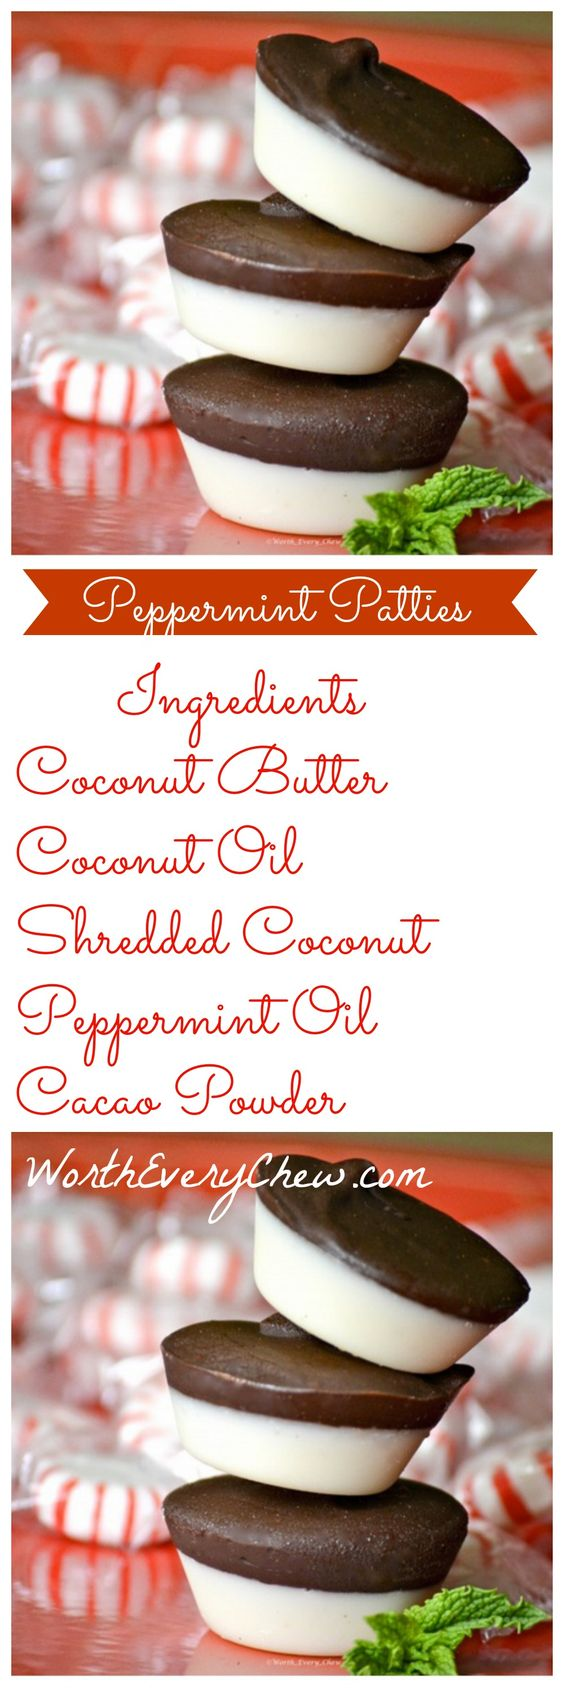 Paleo/Keto Peppermint Patties from WorthEveryChew.com ......These make the perfect fat bomb and a great low carb high fat answer to your sweet tooth.A crisp, sweet satisfying recipe that is Worth Every Chew !: